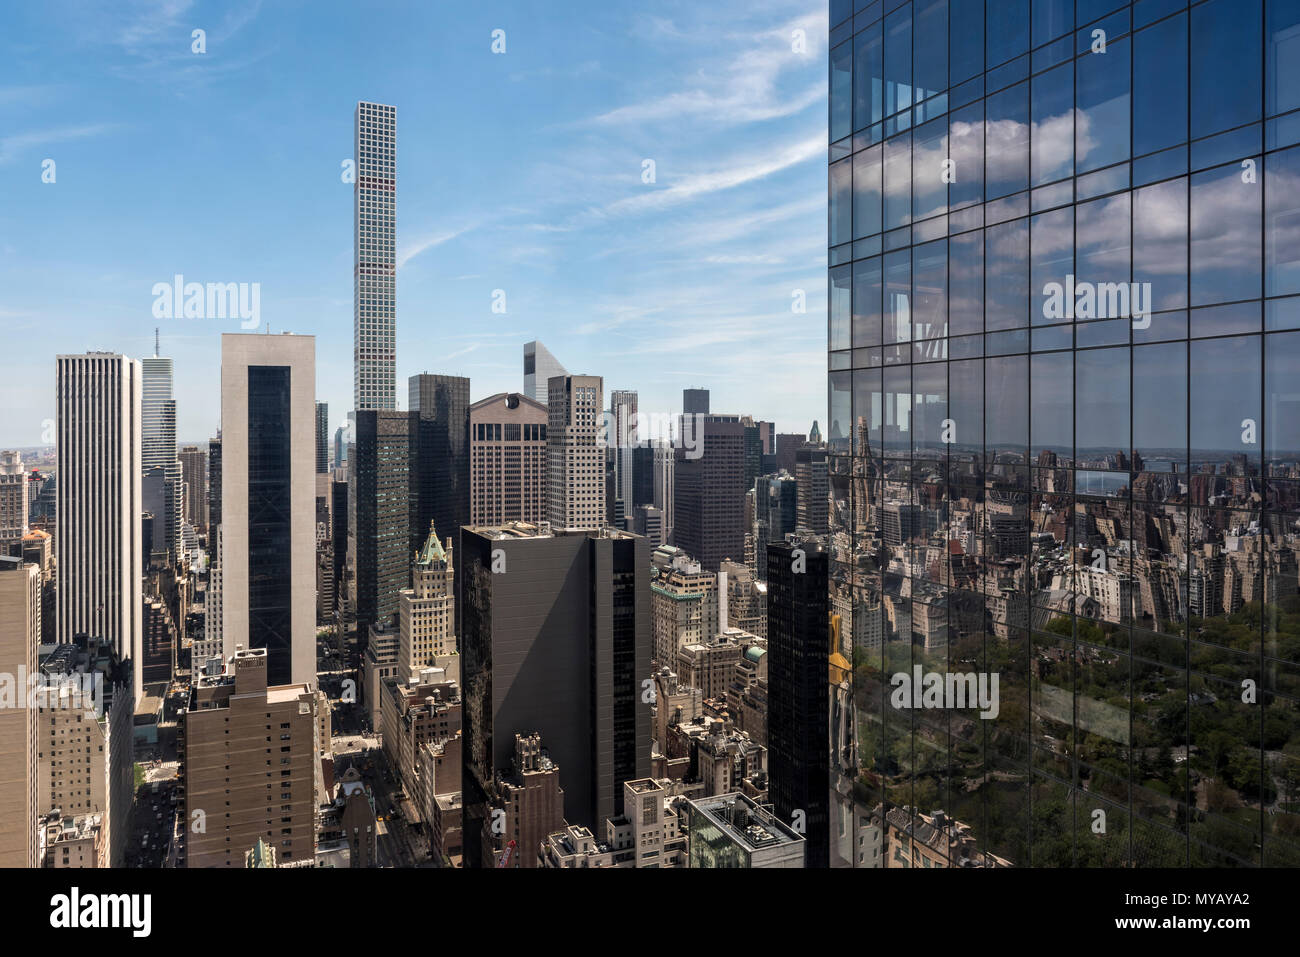 """""""Cityscape with skyscrapers in New York City, USA"""" Stock Photo"""